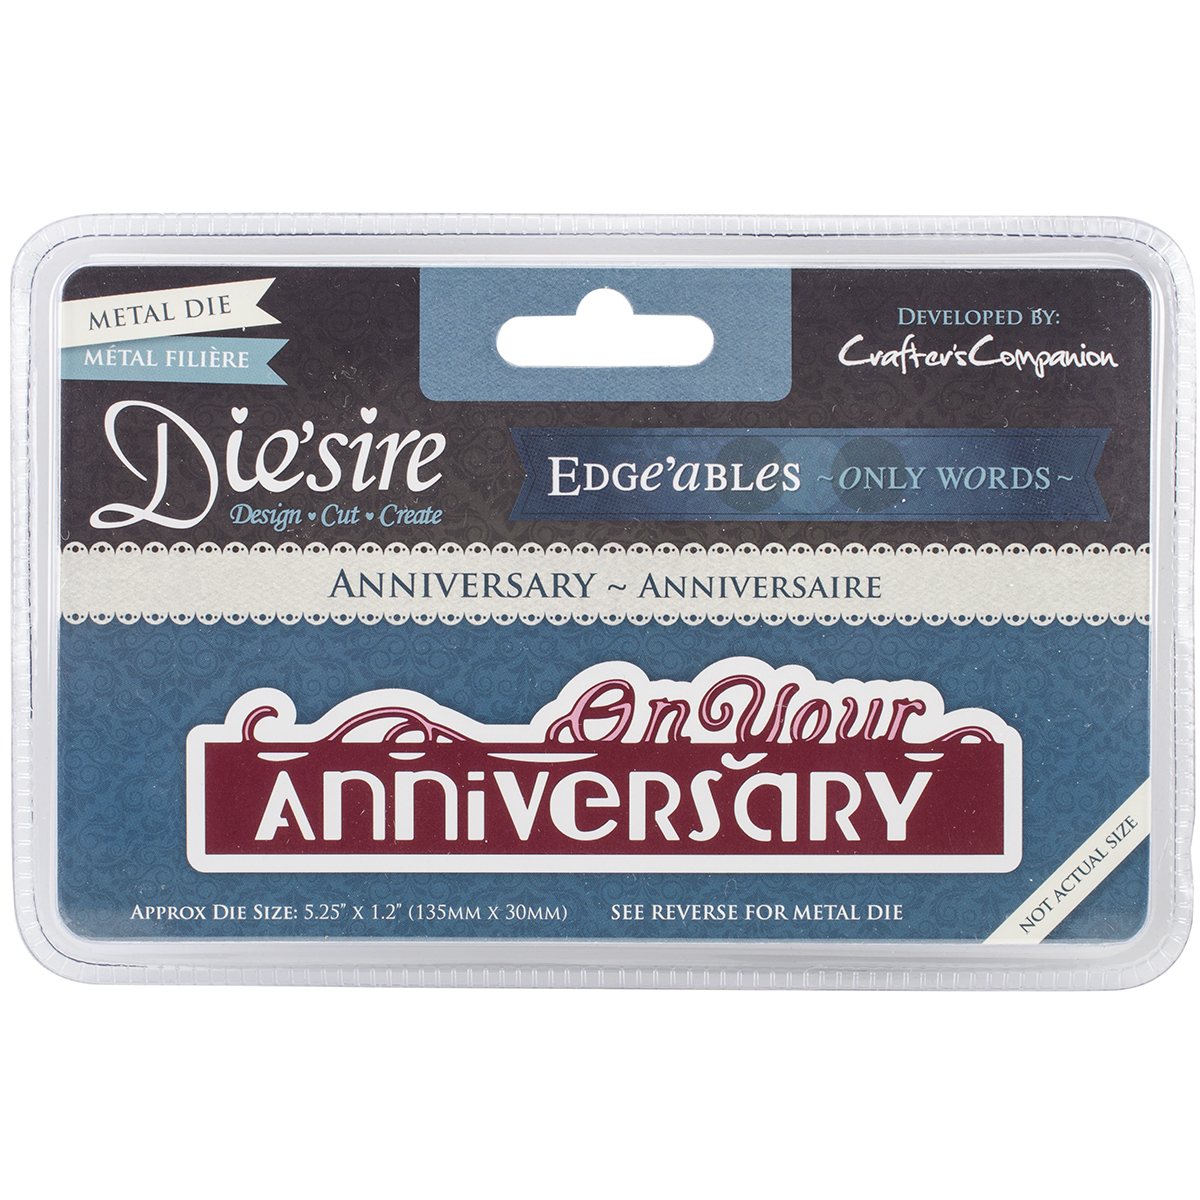 Crafter's Companion Anniversary Die 'sire Edge'ables Cutting & Embossing Die